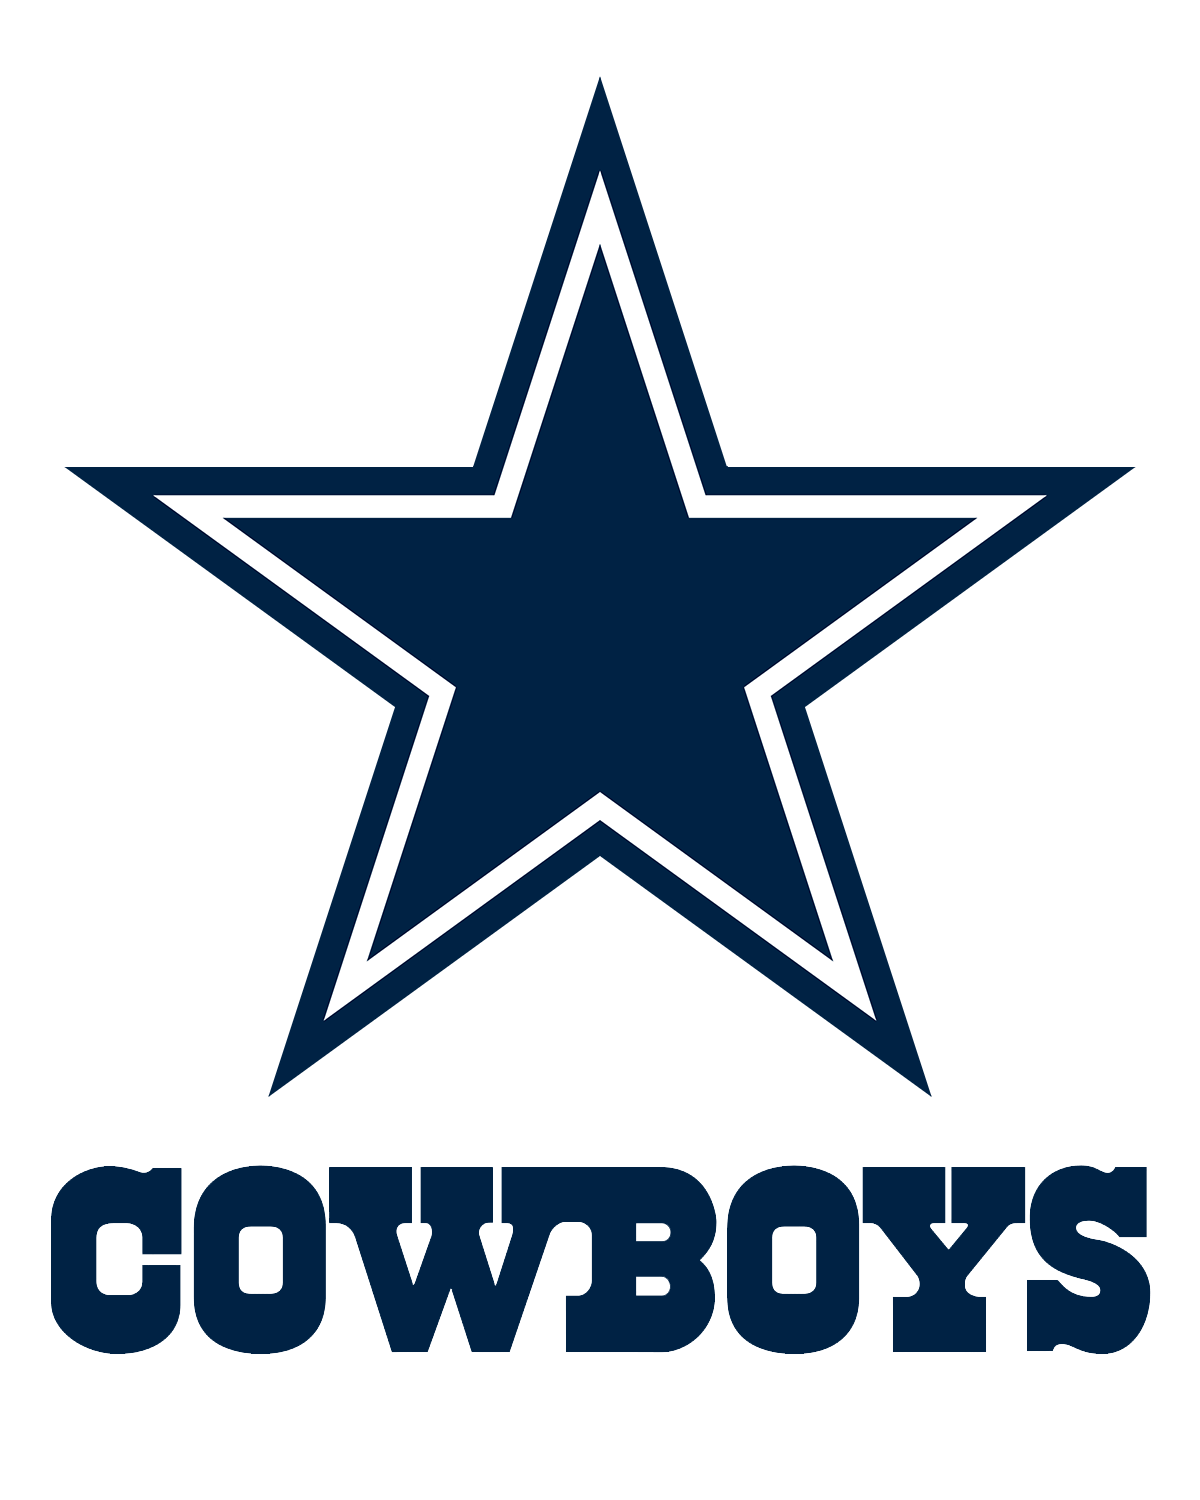 dallas cowboys logo png transparent svg vector freebie supply rh freebiesupply com dallas cowboys logo pictures myspace